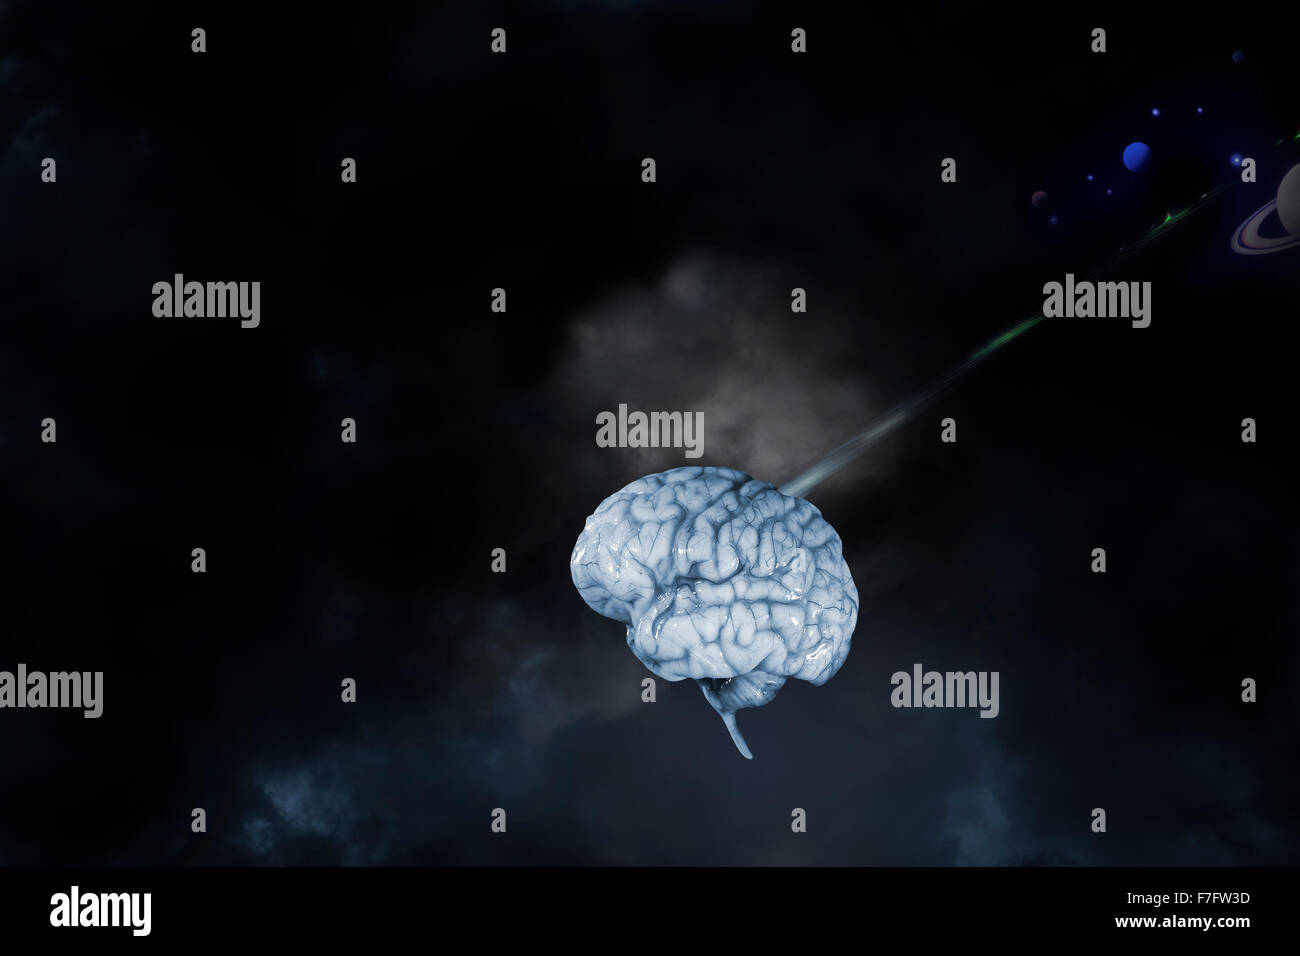 human brain in outer space, communication - Stock Image